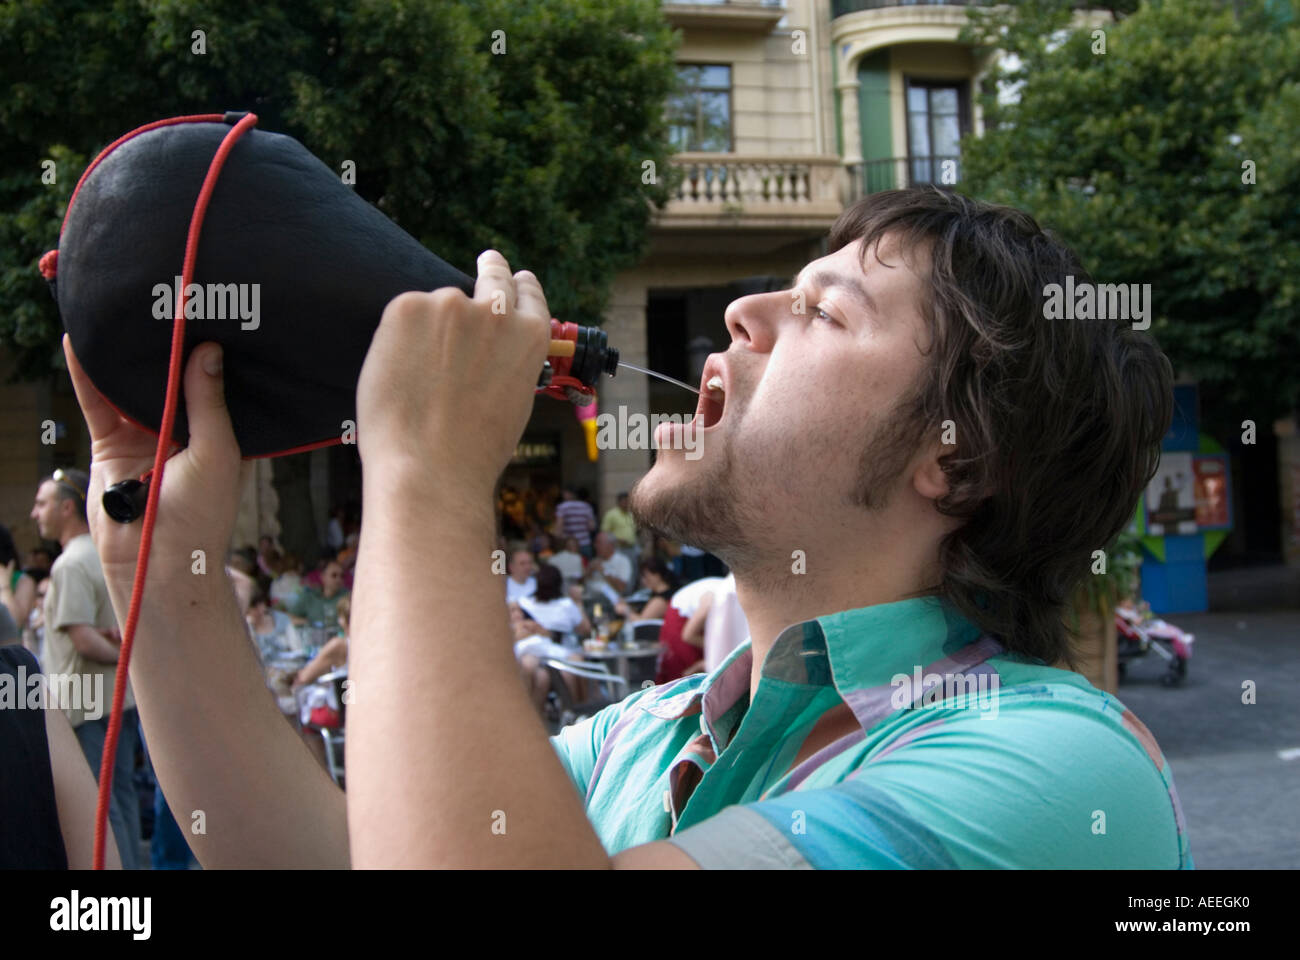 Sack 7805487 Photo Stock Young Leather From - San Wine Alamy Man Drinking A Traditional